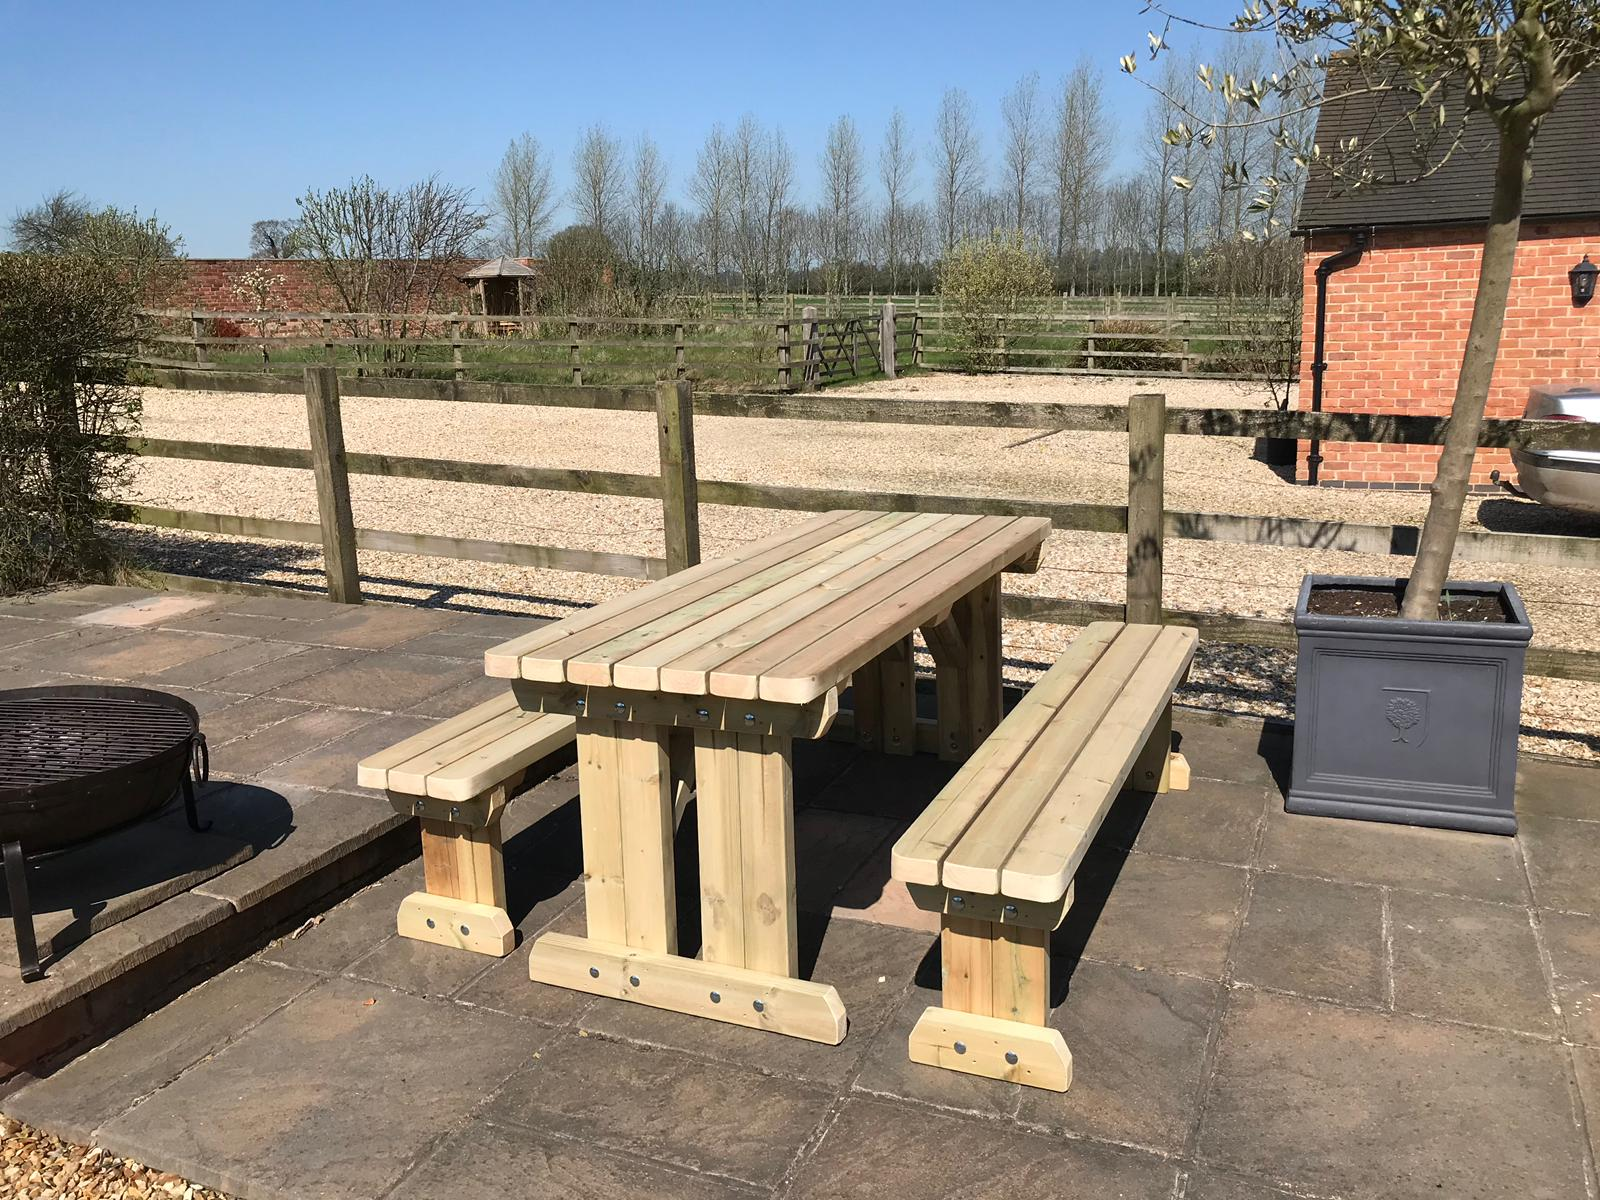 A side view of a freestanding picnic table in the sun